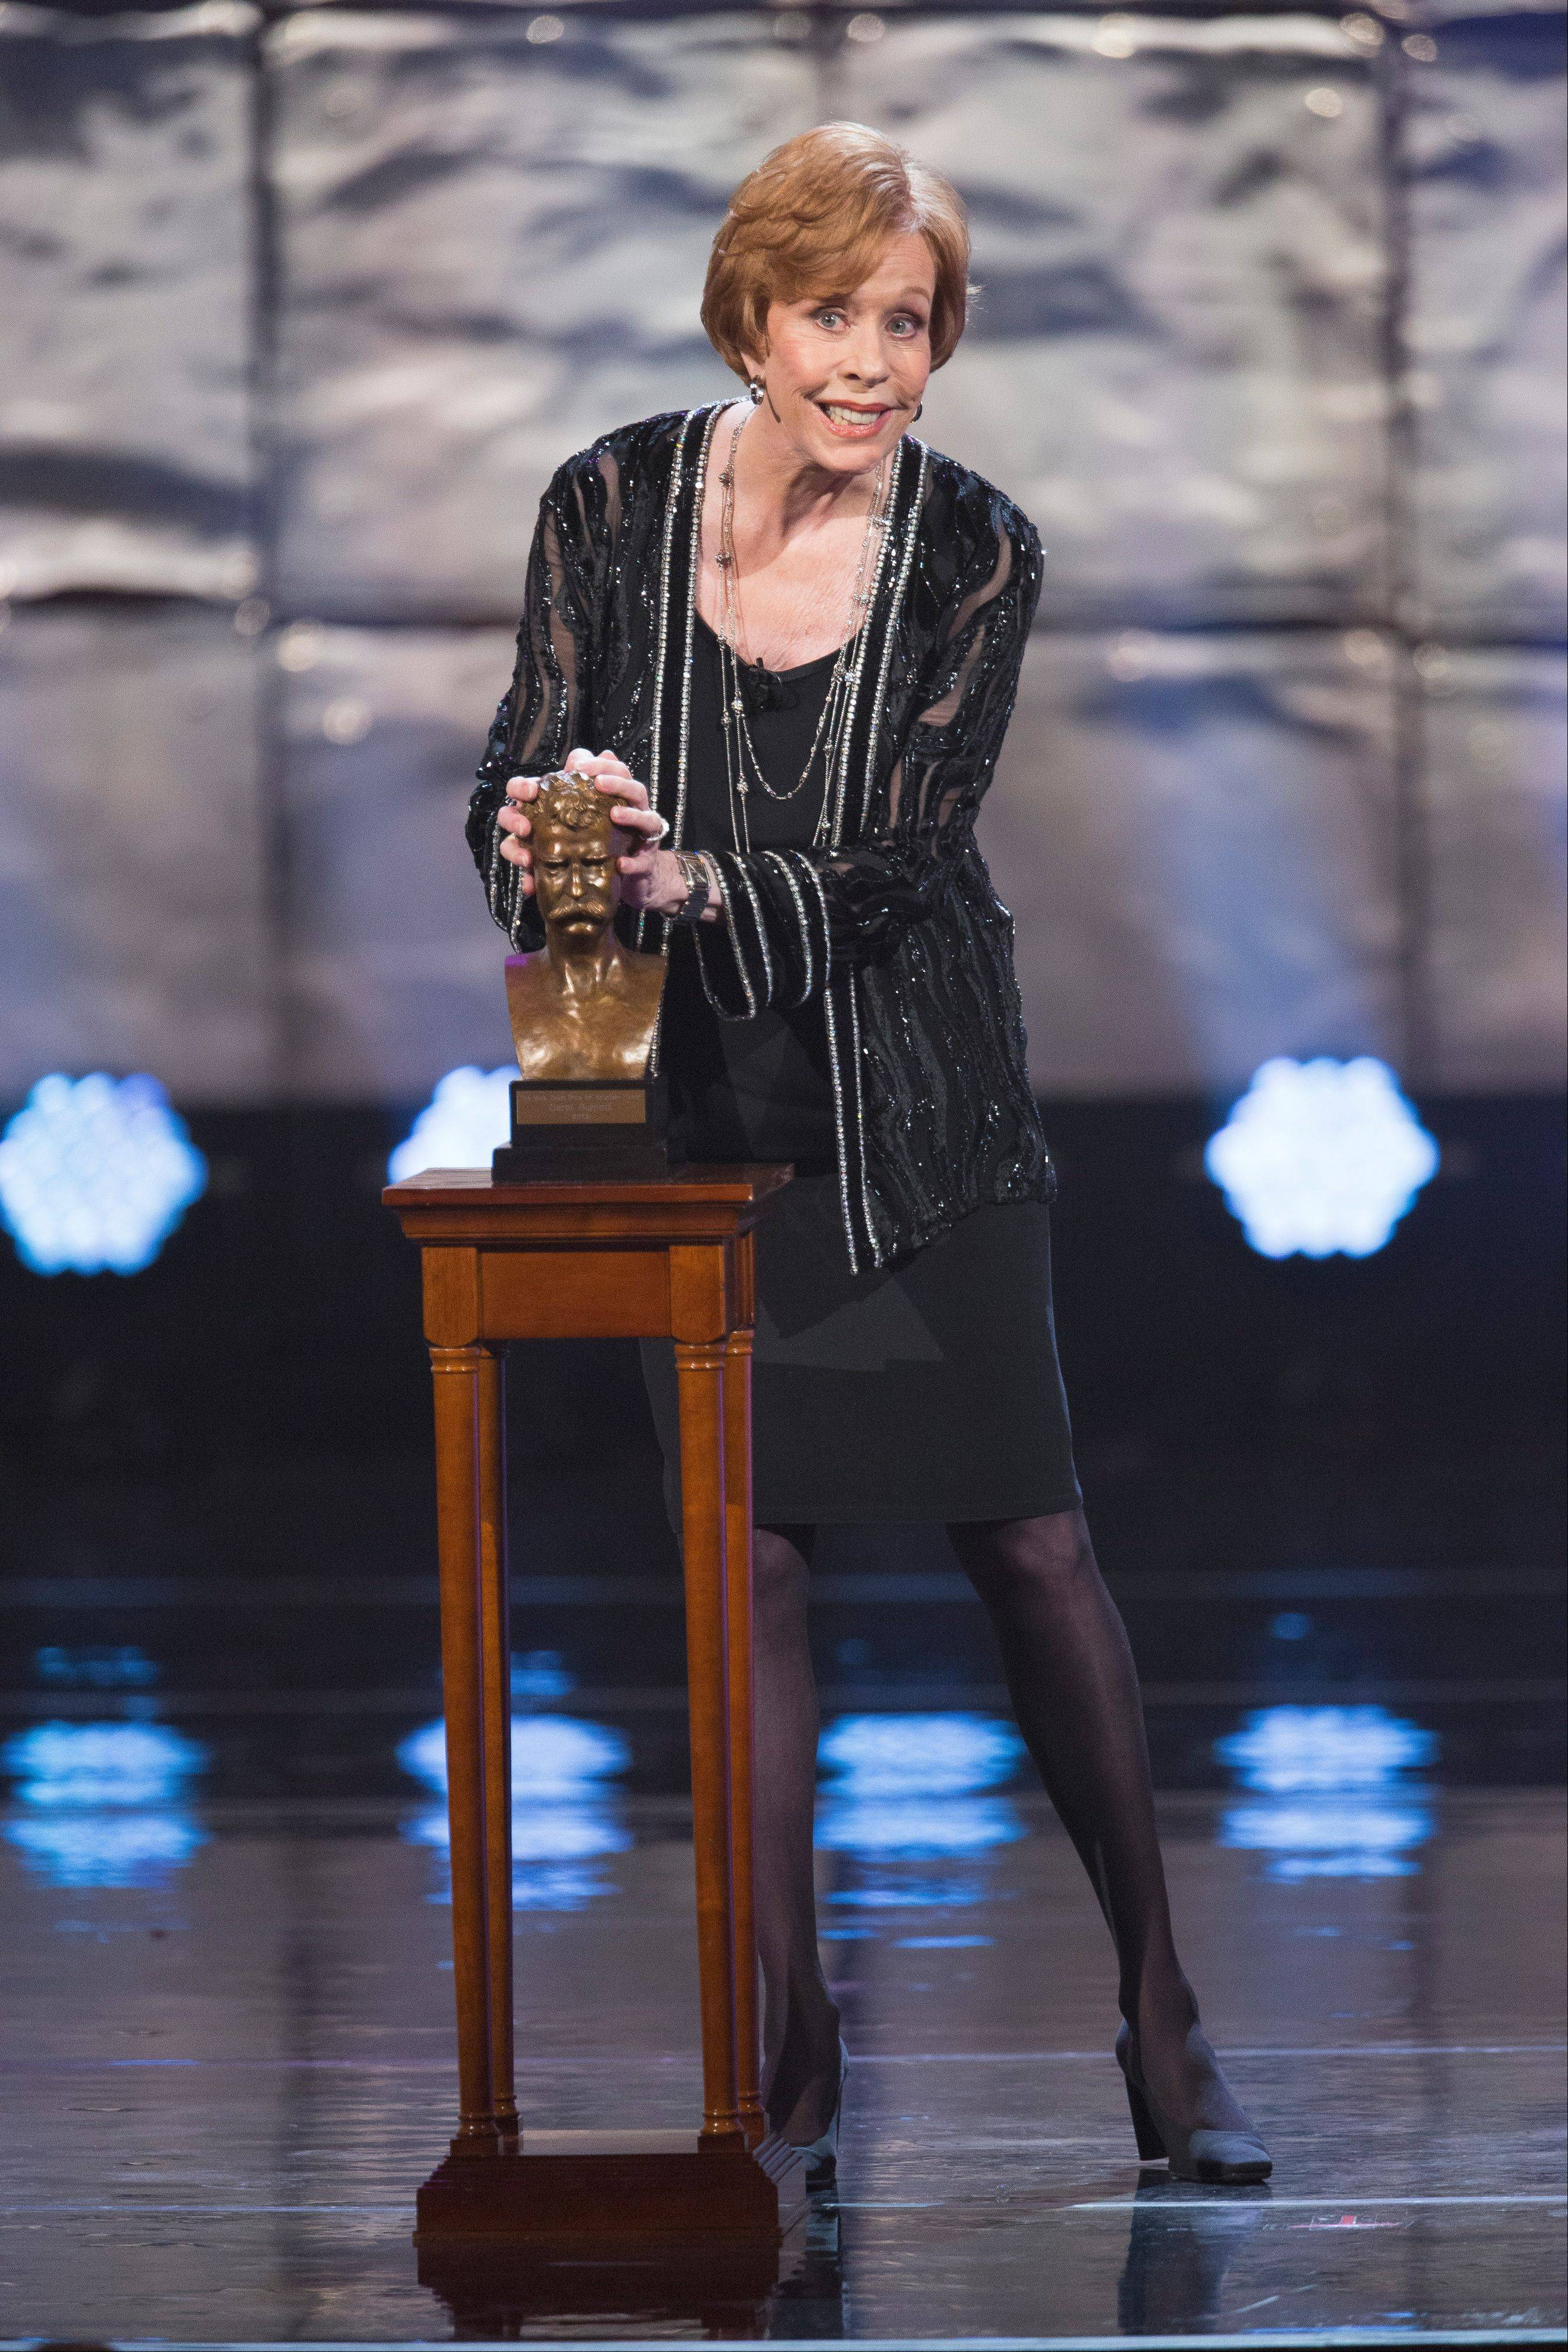 TV variety veteran Carol Burnett received the Kennedy Center's Mark Twain Prize for American Humor last month. The event will air Sunday, Nov. 24, on PBS.